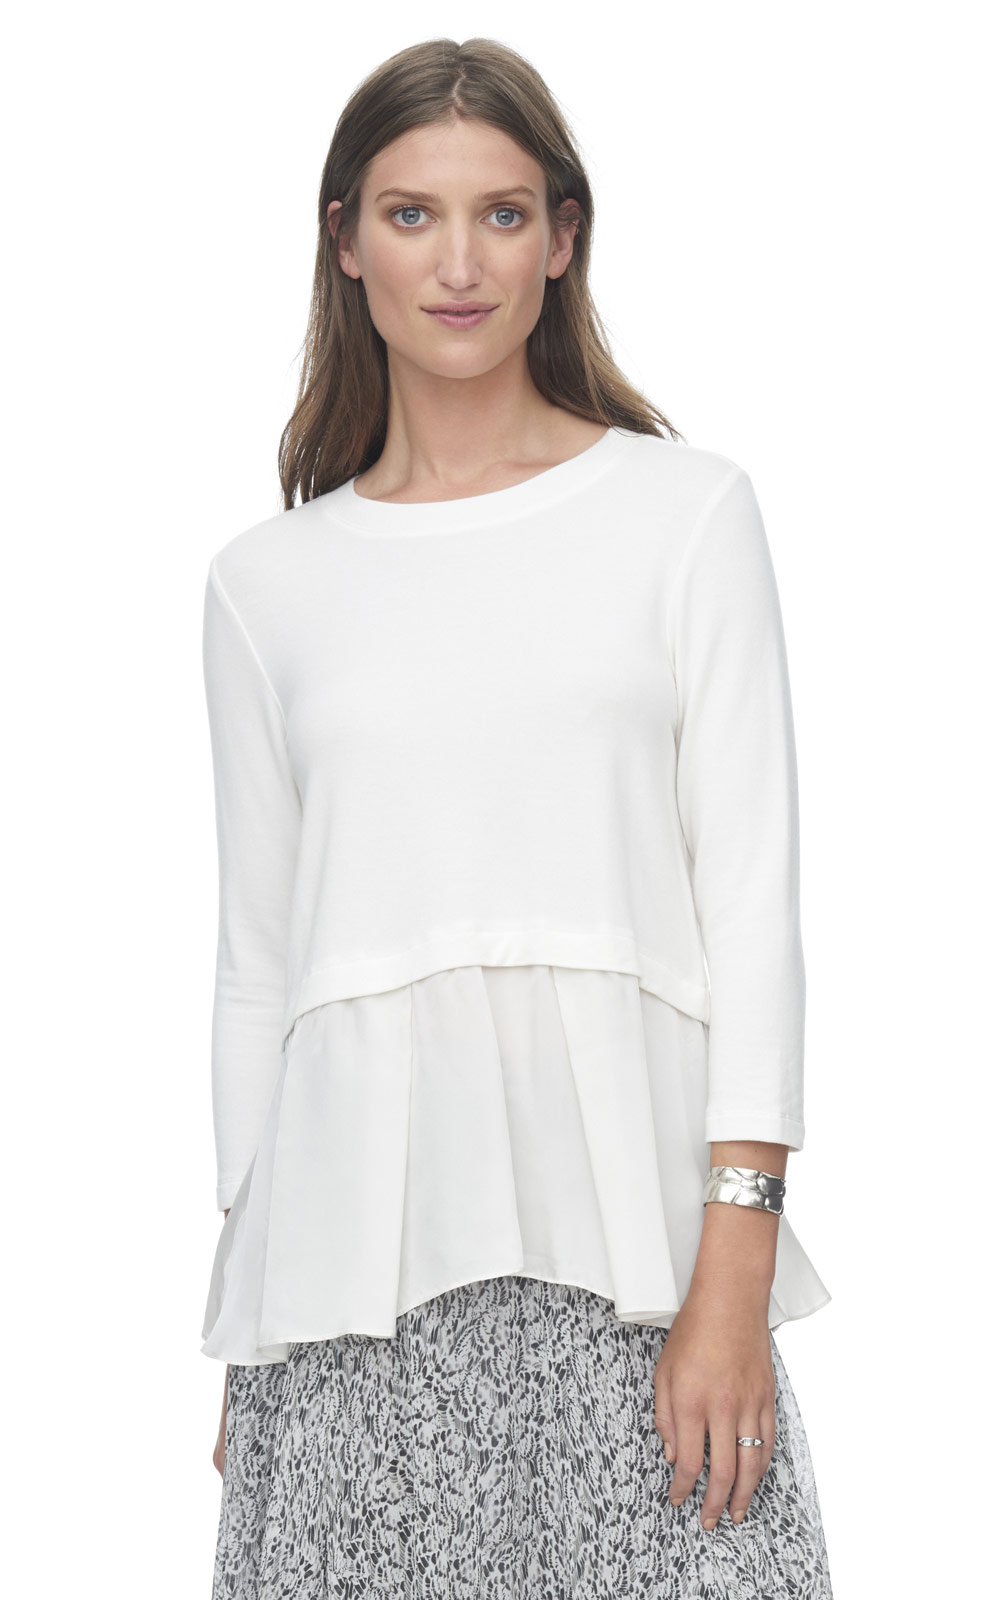 49e549e64287f8 Rebecca Taylor Terry Top With Ruffle in White - Lyst